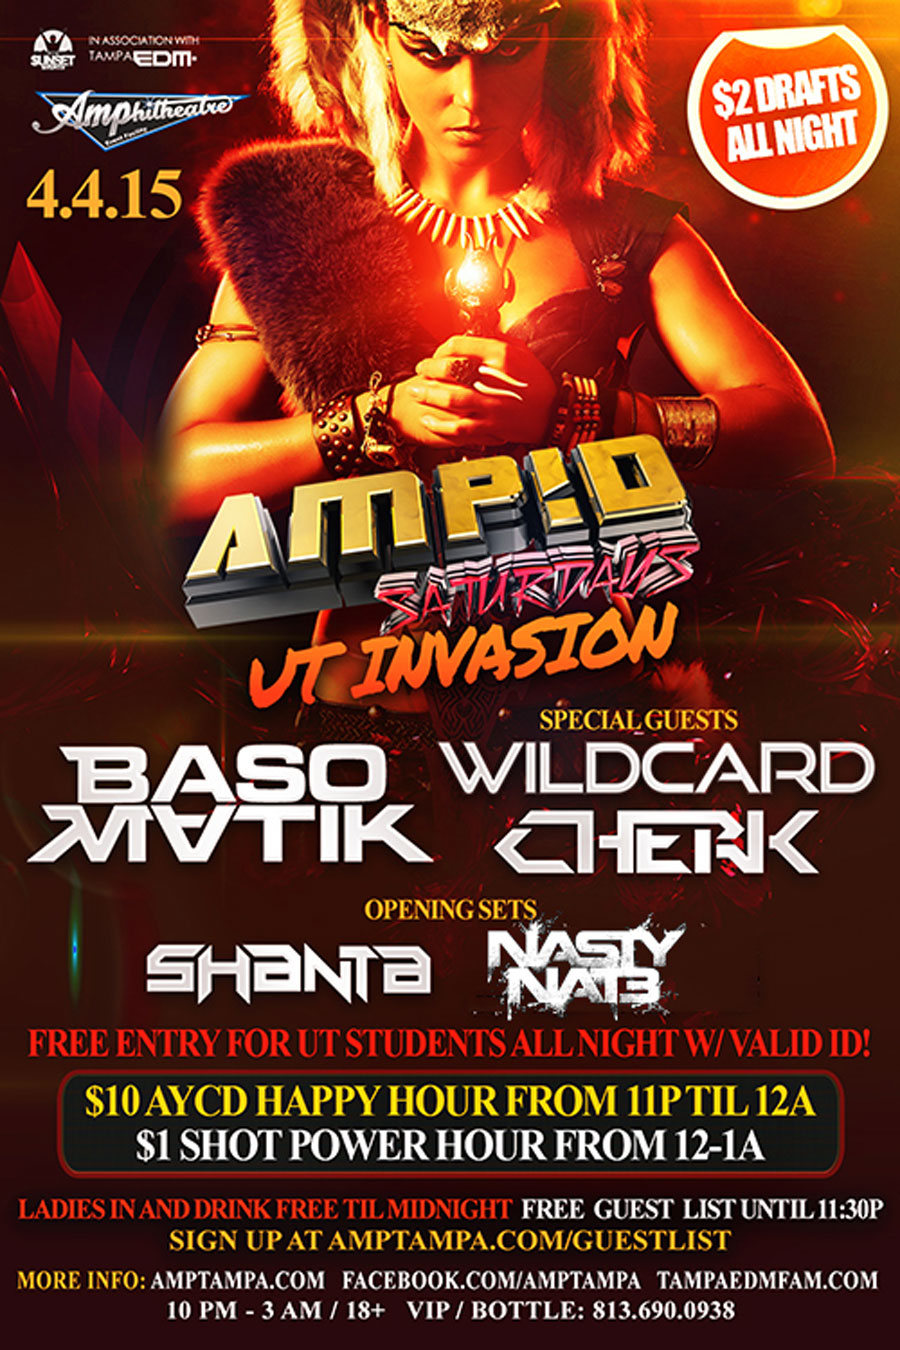 UT INVASION @ AMP!D Saturdays 4/4/15